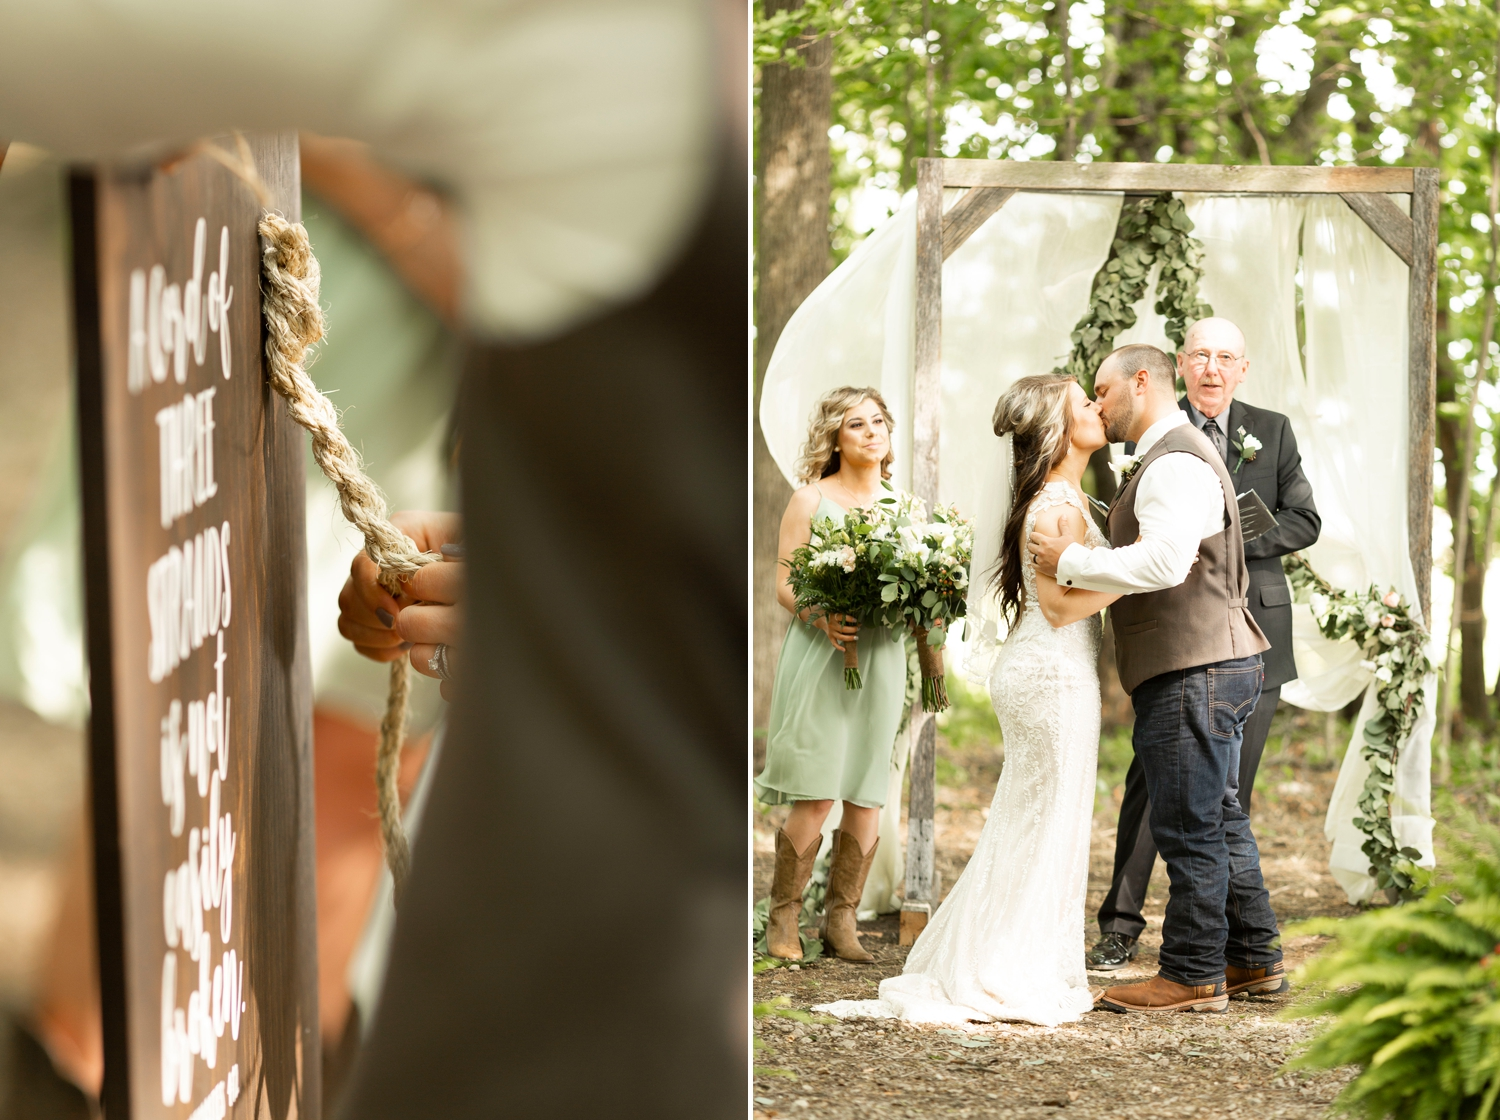 three cords ceremony, three cords, cord of three strands sign, Barn at the backwoods, rustic wedding venues, thornville wedding, rustic wedding inspiration, Columbus wedding photographer, columbus wedding photography, country wedding, backwoods wedding, summer wedding, first kiss